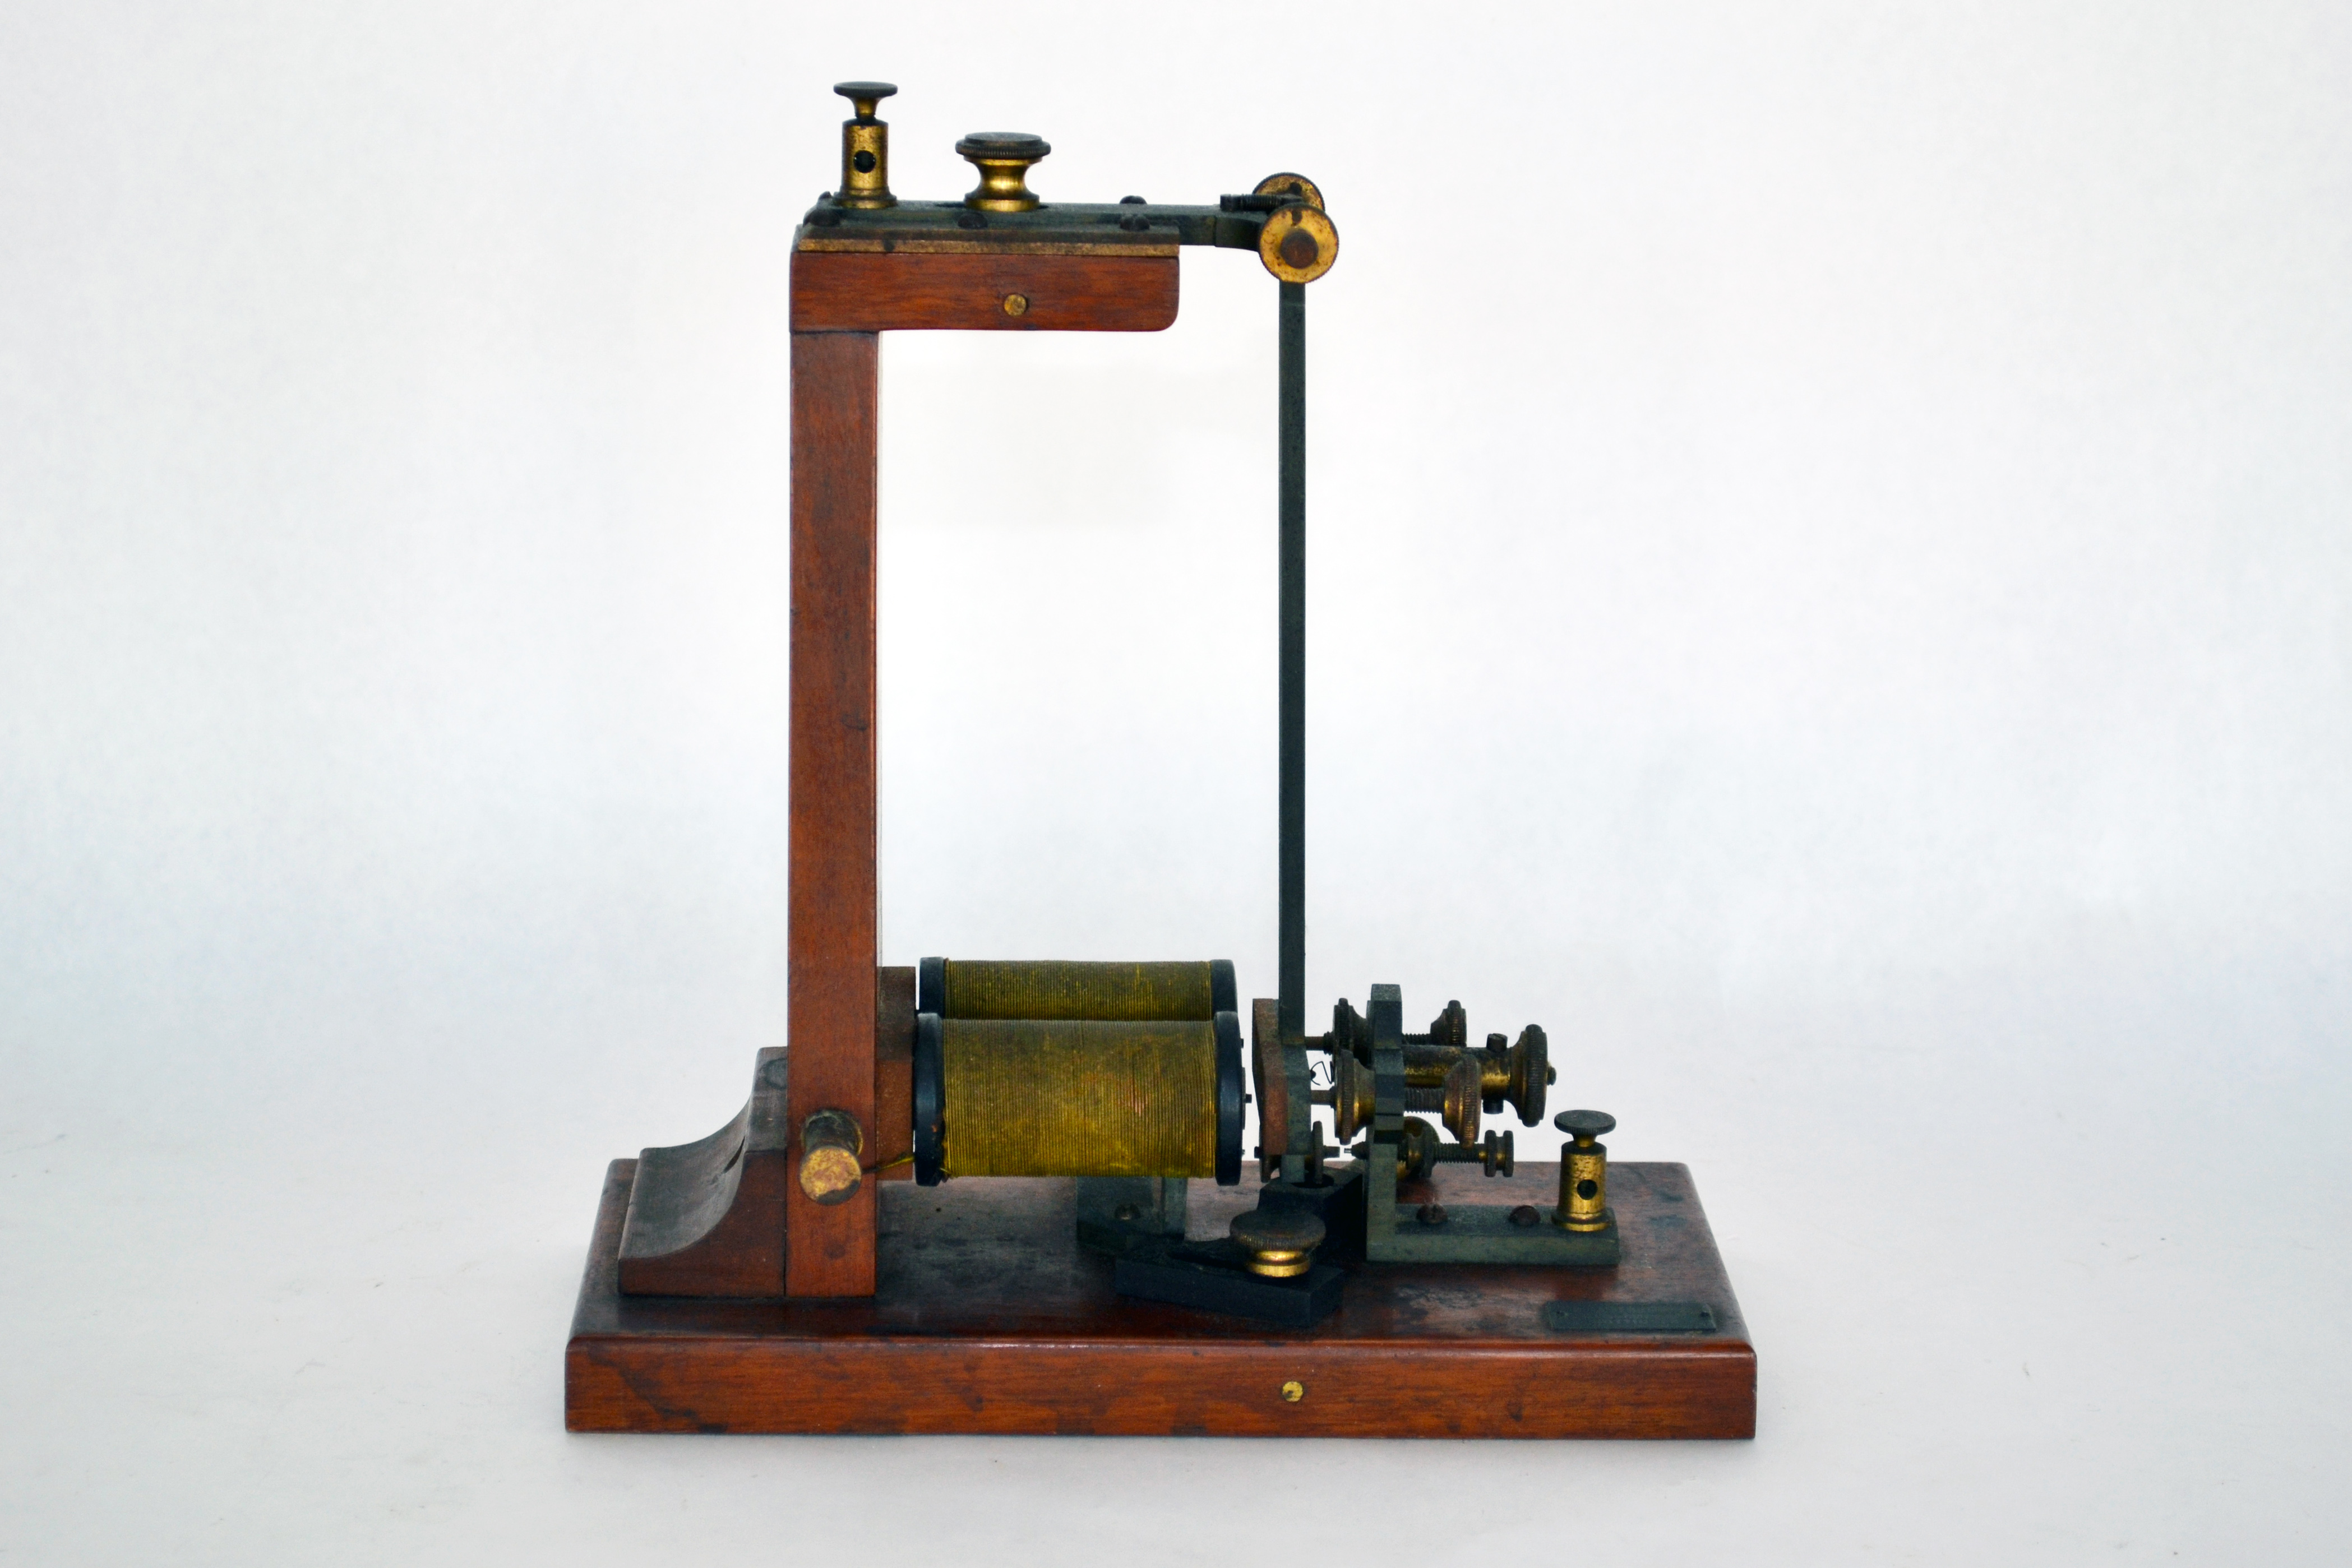 Electrical Measuring Instruments Made By William Gilbert : Name that apparatus a call for historical detectives